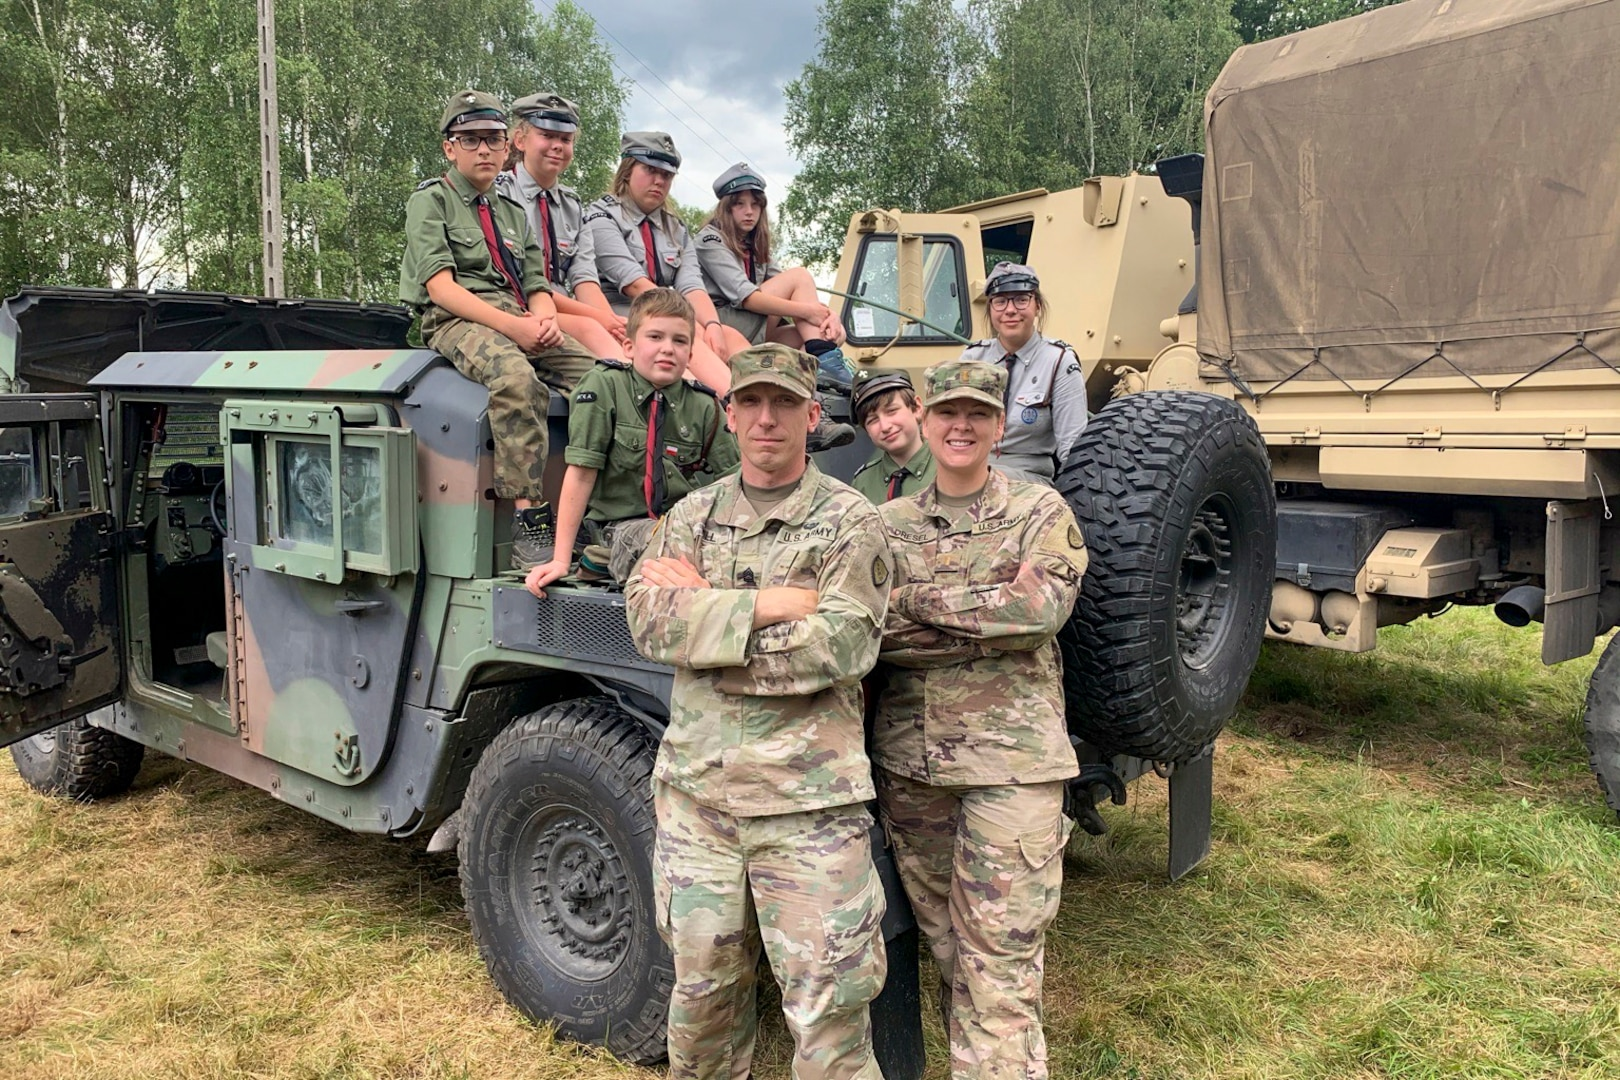 U.S. Army Sgt. 1st Class Dayton Will, left, Forward Operating Site Świętoszów deputy mayor and 2nd Lt. Balinda Dresel, FOS Świętoszów mayor, both with the Alaska National Guard's 297th Regional Support Group, with Polish scouts at Camp Watra near Osieczow, Poland, July 17, 2020. The Alaska Guardsmen and Reservist with the 266th Ordinance Company, out of Puerto Rico, and Bravo Company, 418th Civil Affairs Battalion, out of Missouri, learned about the history and values of the Polish scouting organization while sharing their units' missions and high-mobility multipurpose wheeled and medium tactical vehicles that are assigned to nearby FOS Świętoszów.